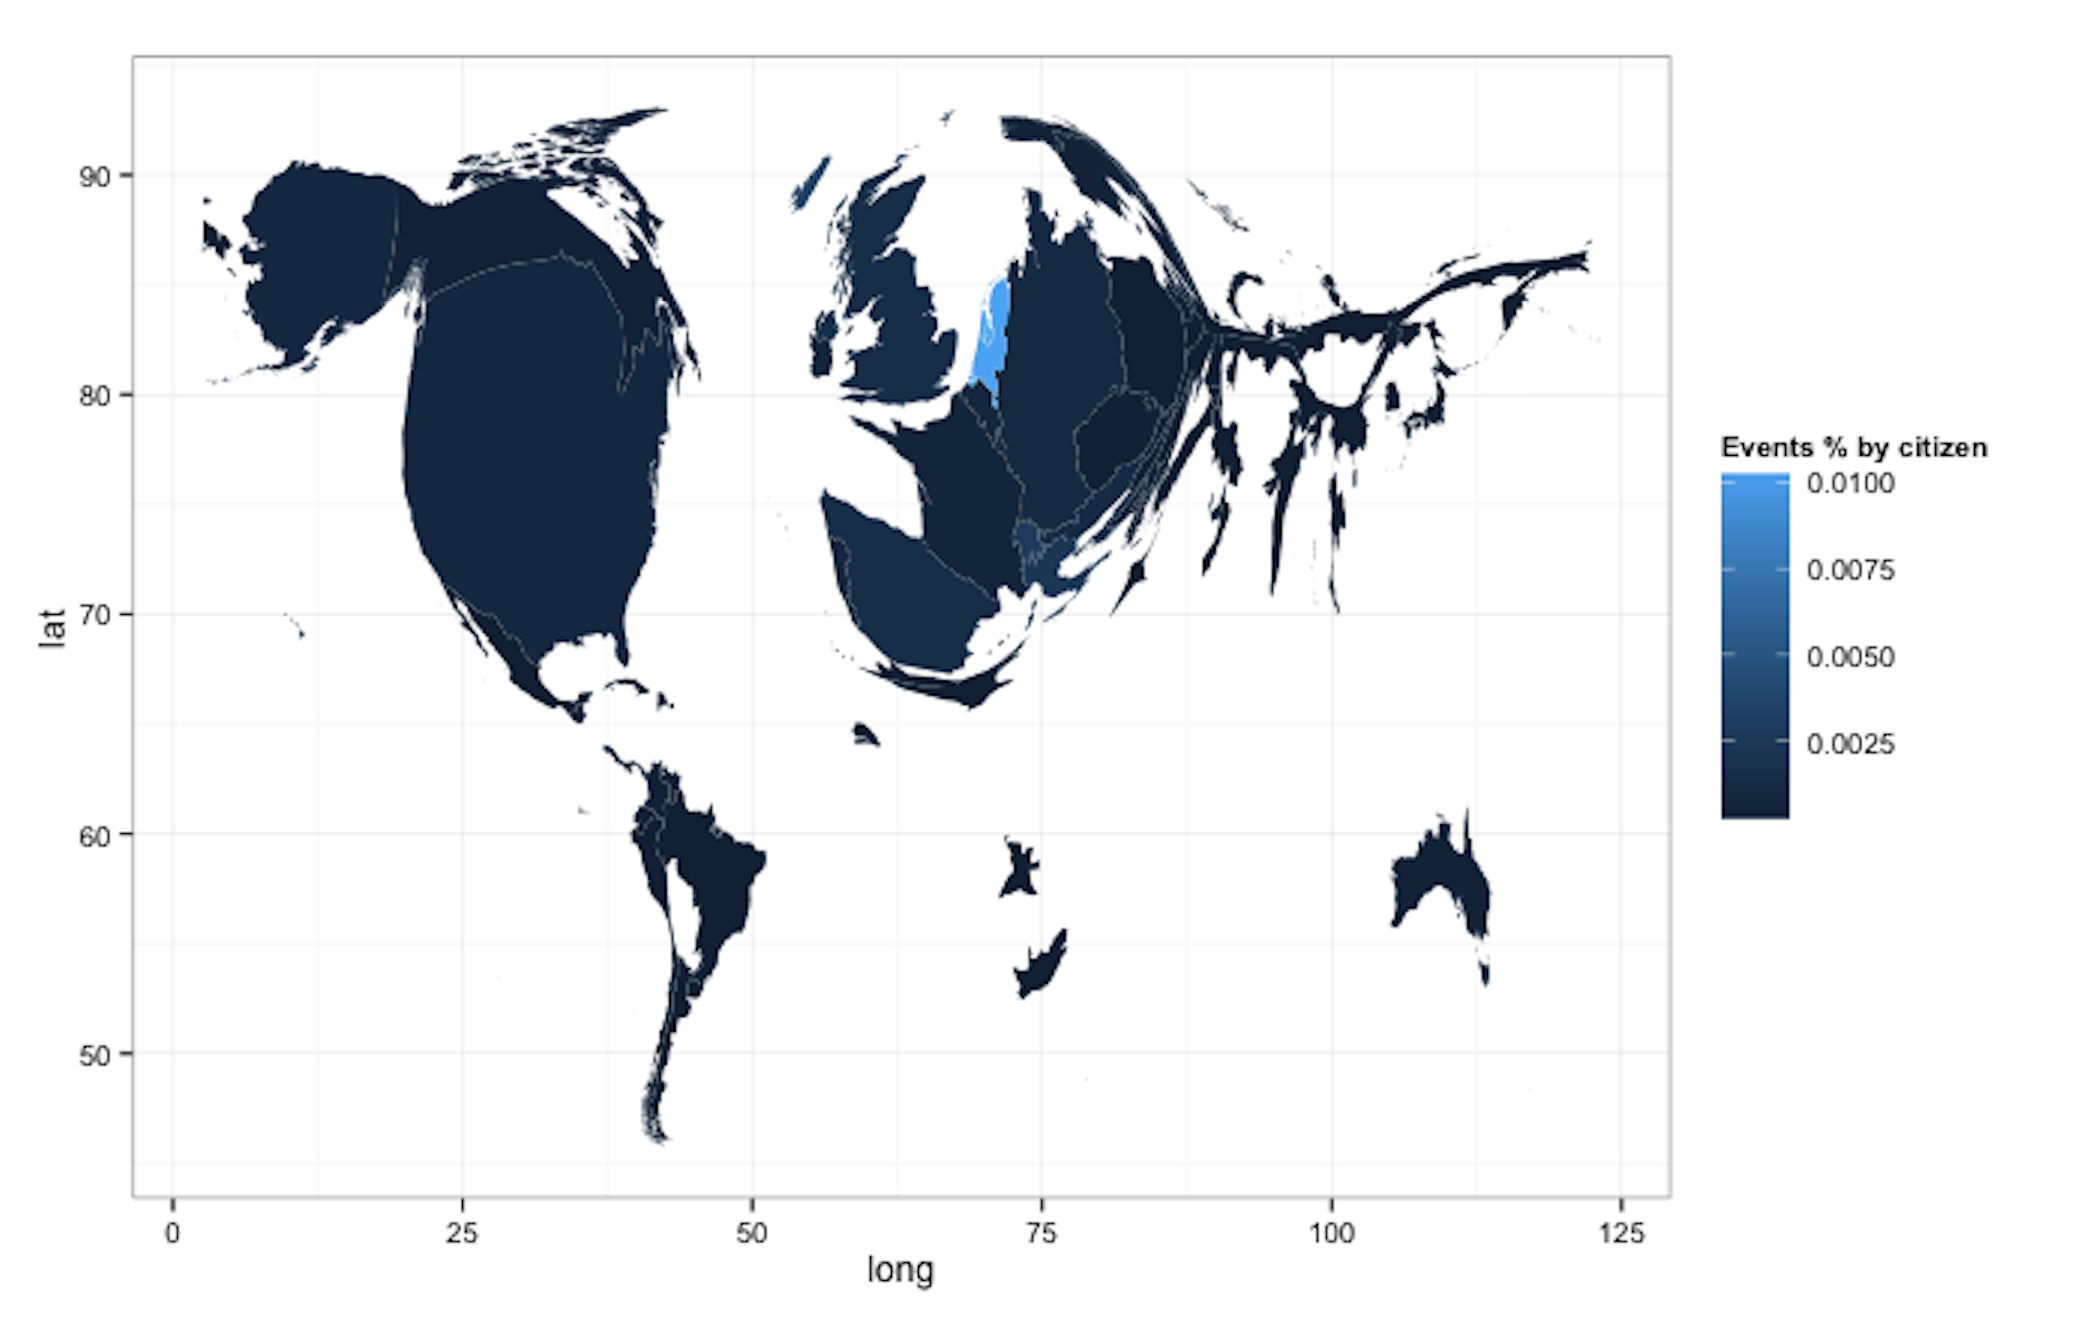 **Figure 8:** Cartogram of countries by normalised number of events by countries populations.